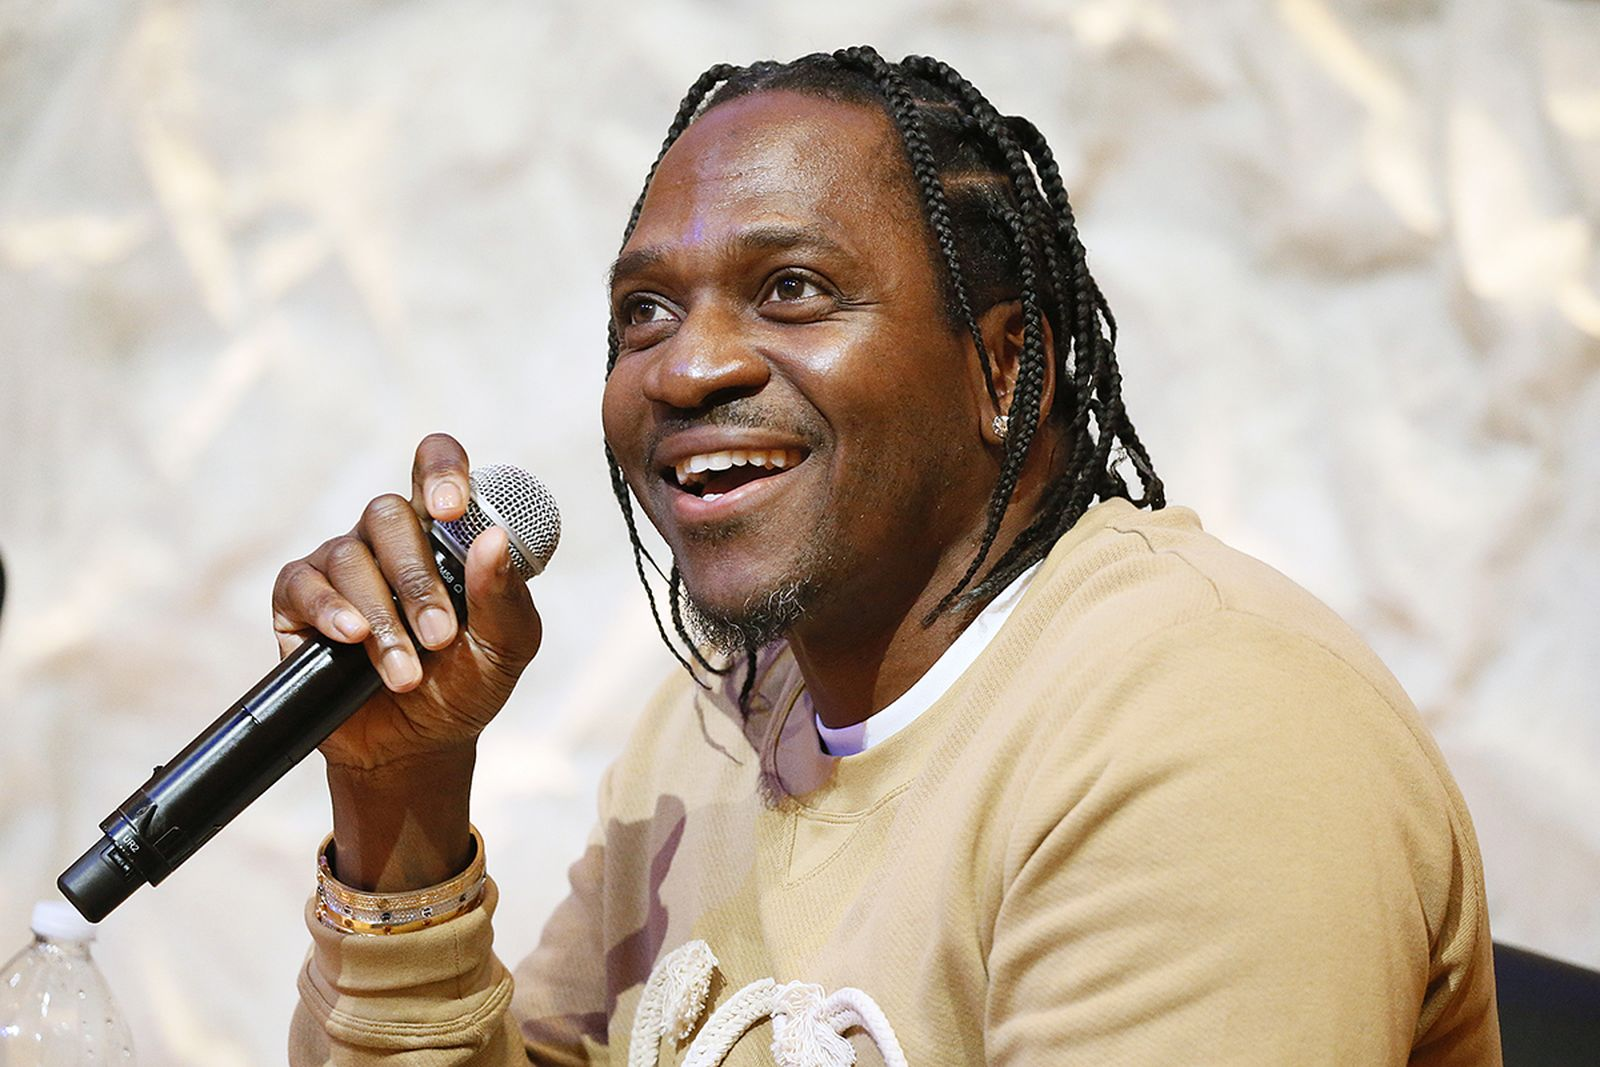 Pusha T speaks at a panel discussion